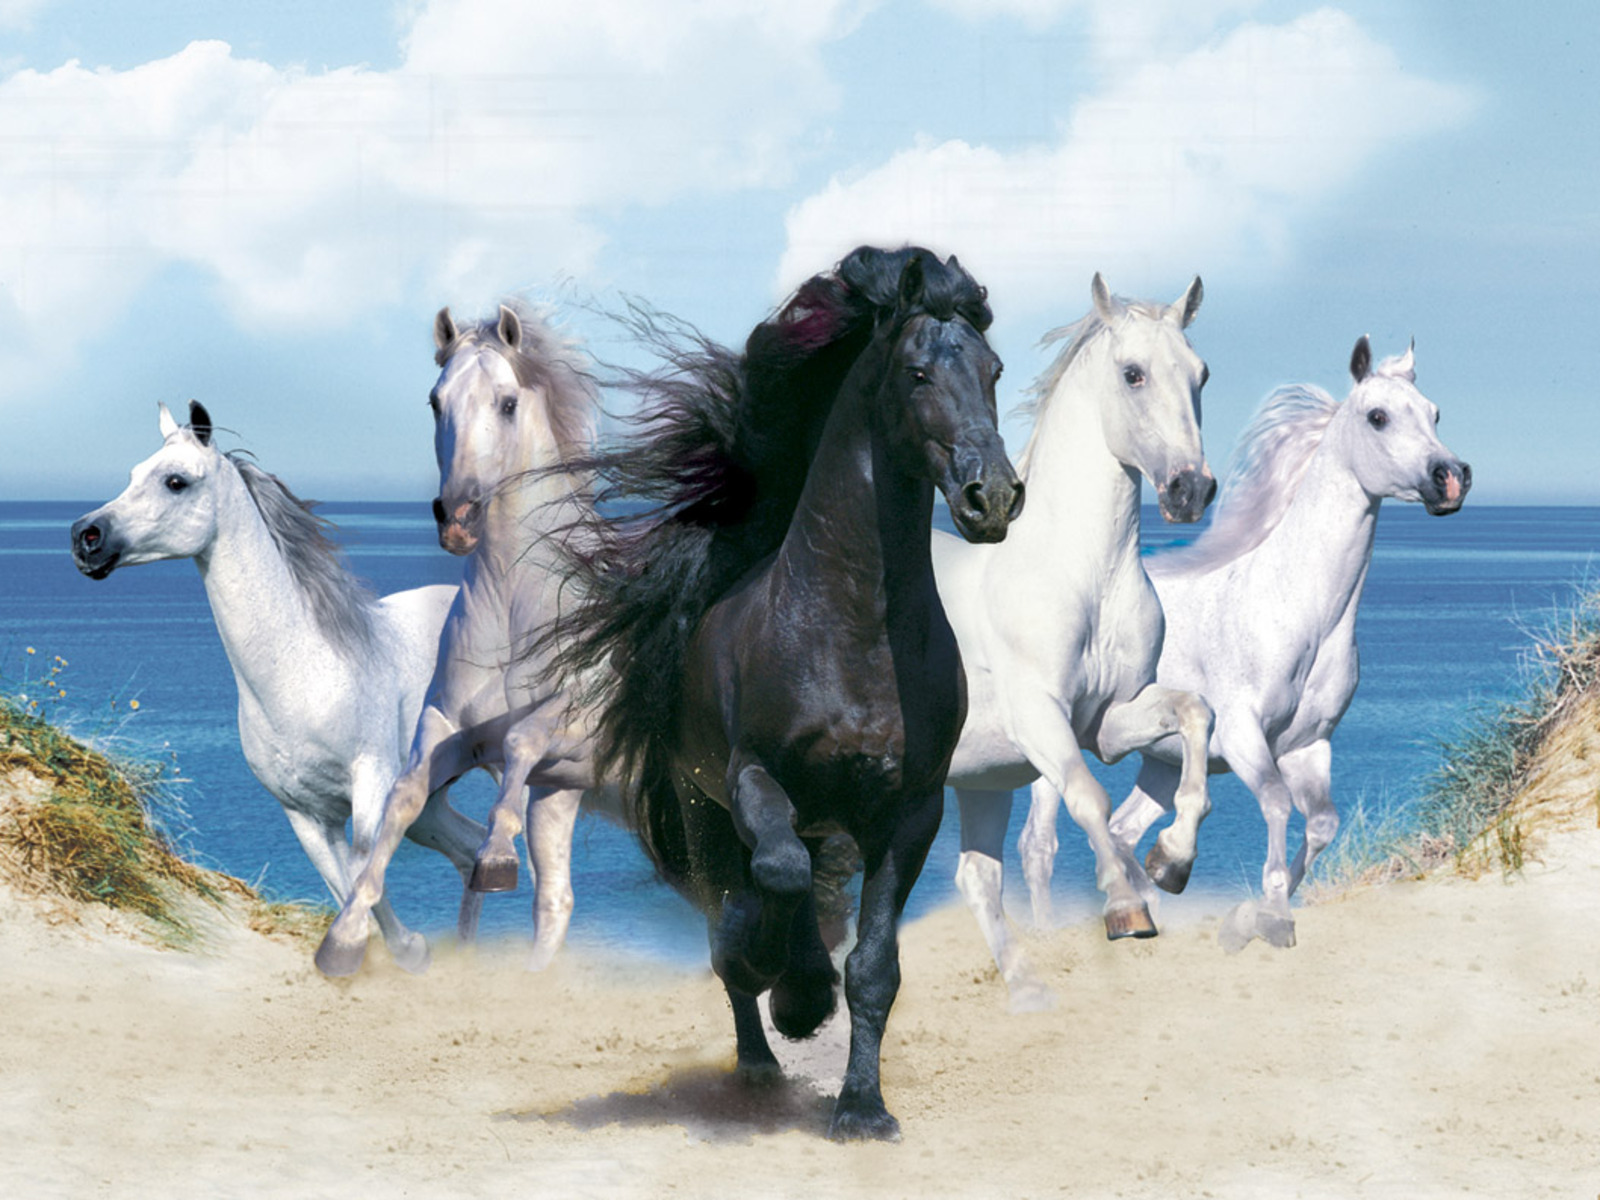 Horses images galloping on the beach hd wallpaper and background horses images galloping on the beach hd wallpaper and background photos altavistaventures Image collections